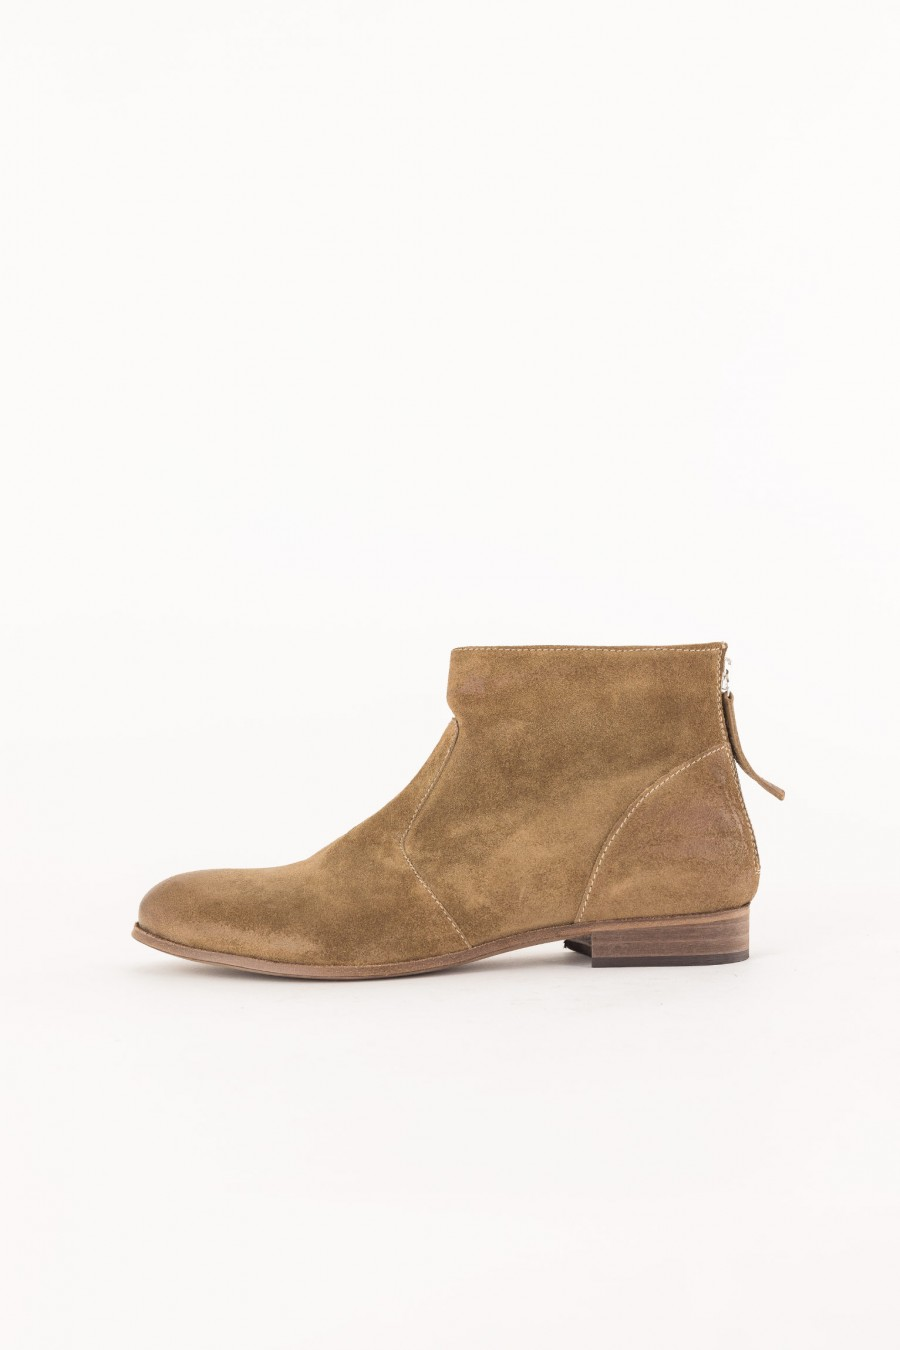 walnut colored suede ankle boot